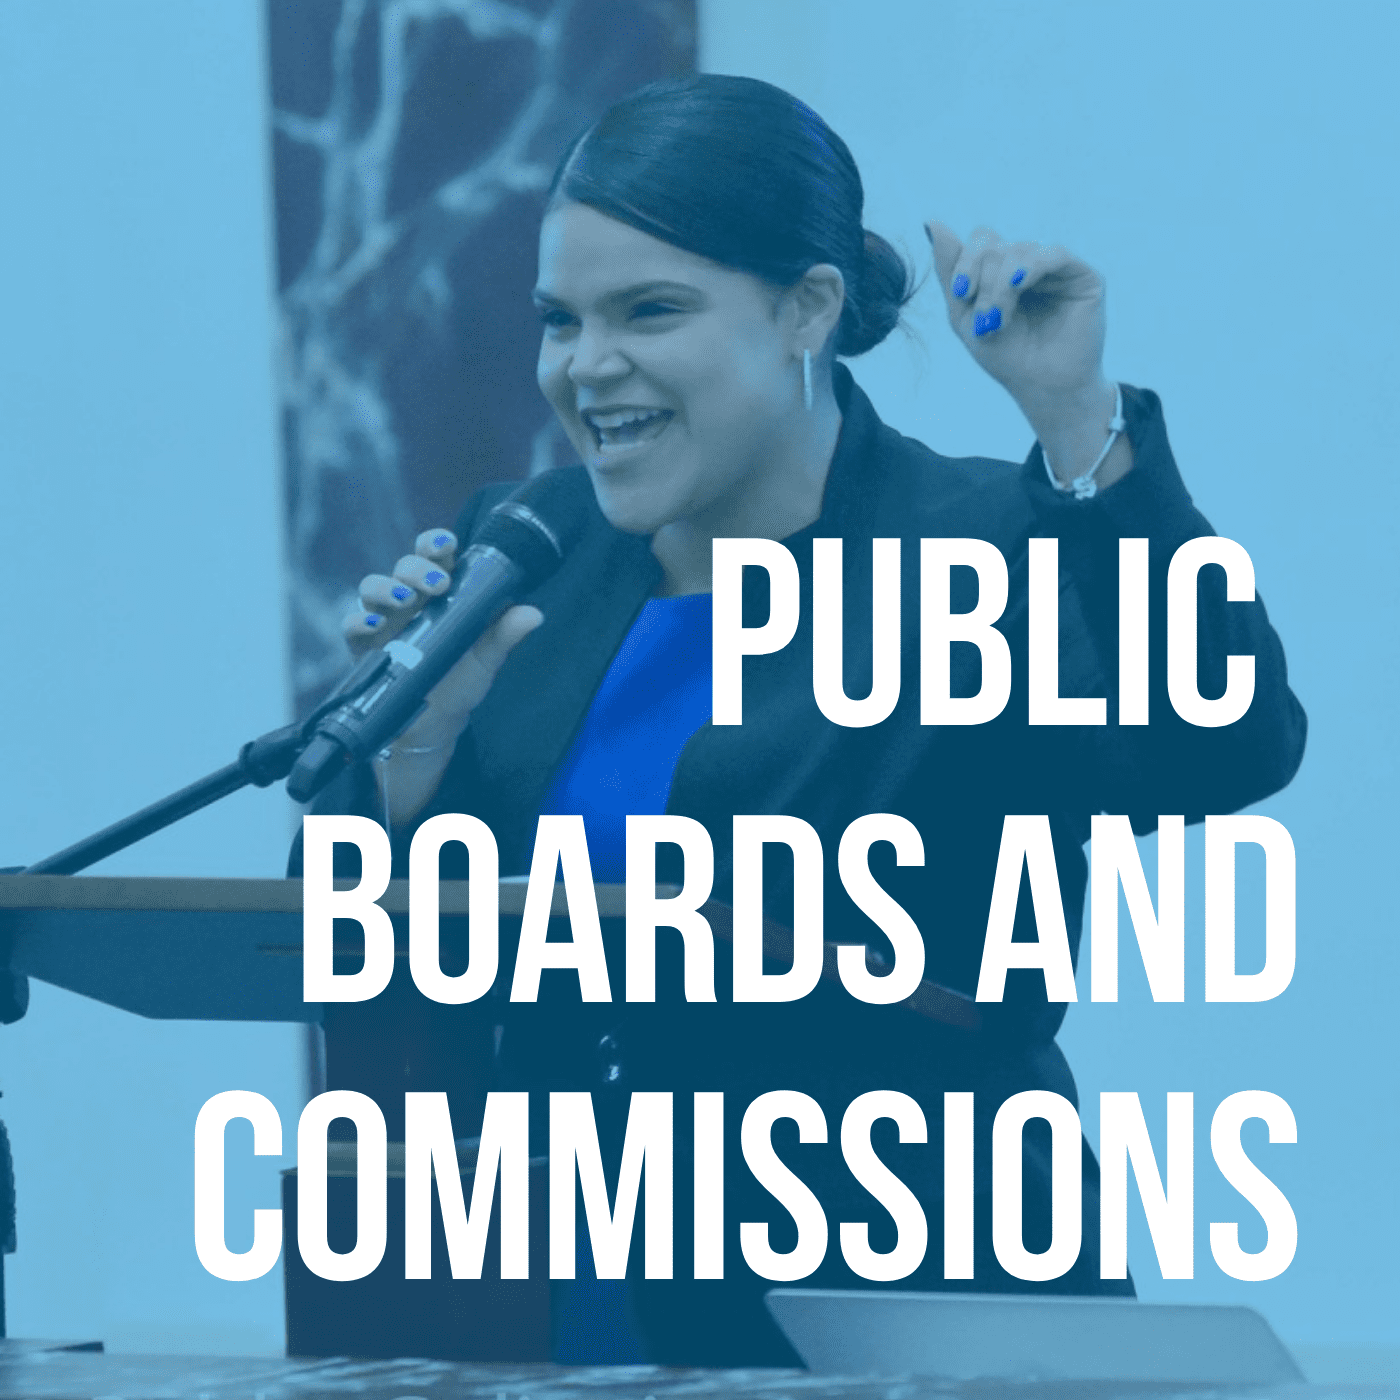 PUBLIC BOARDS AND COMMISSIONS